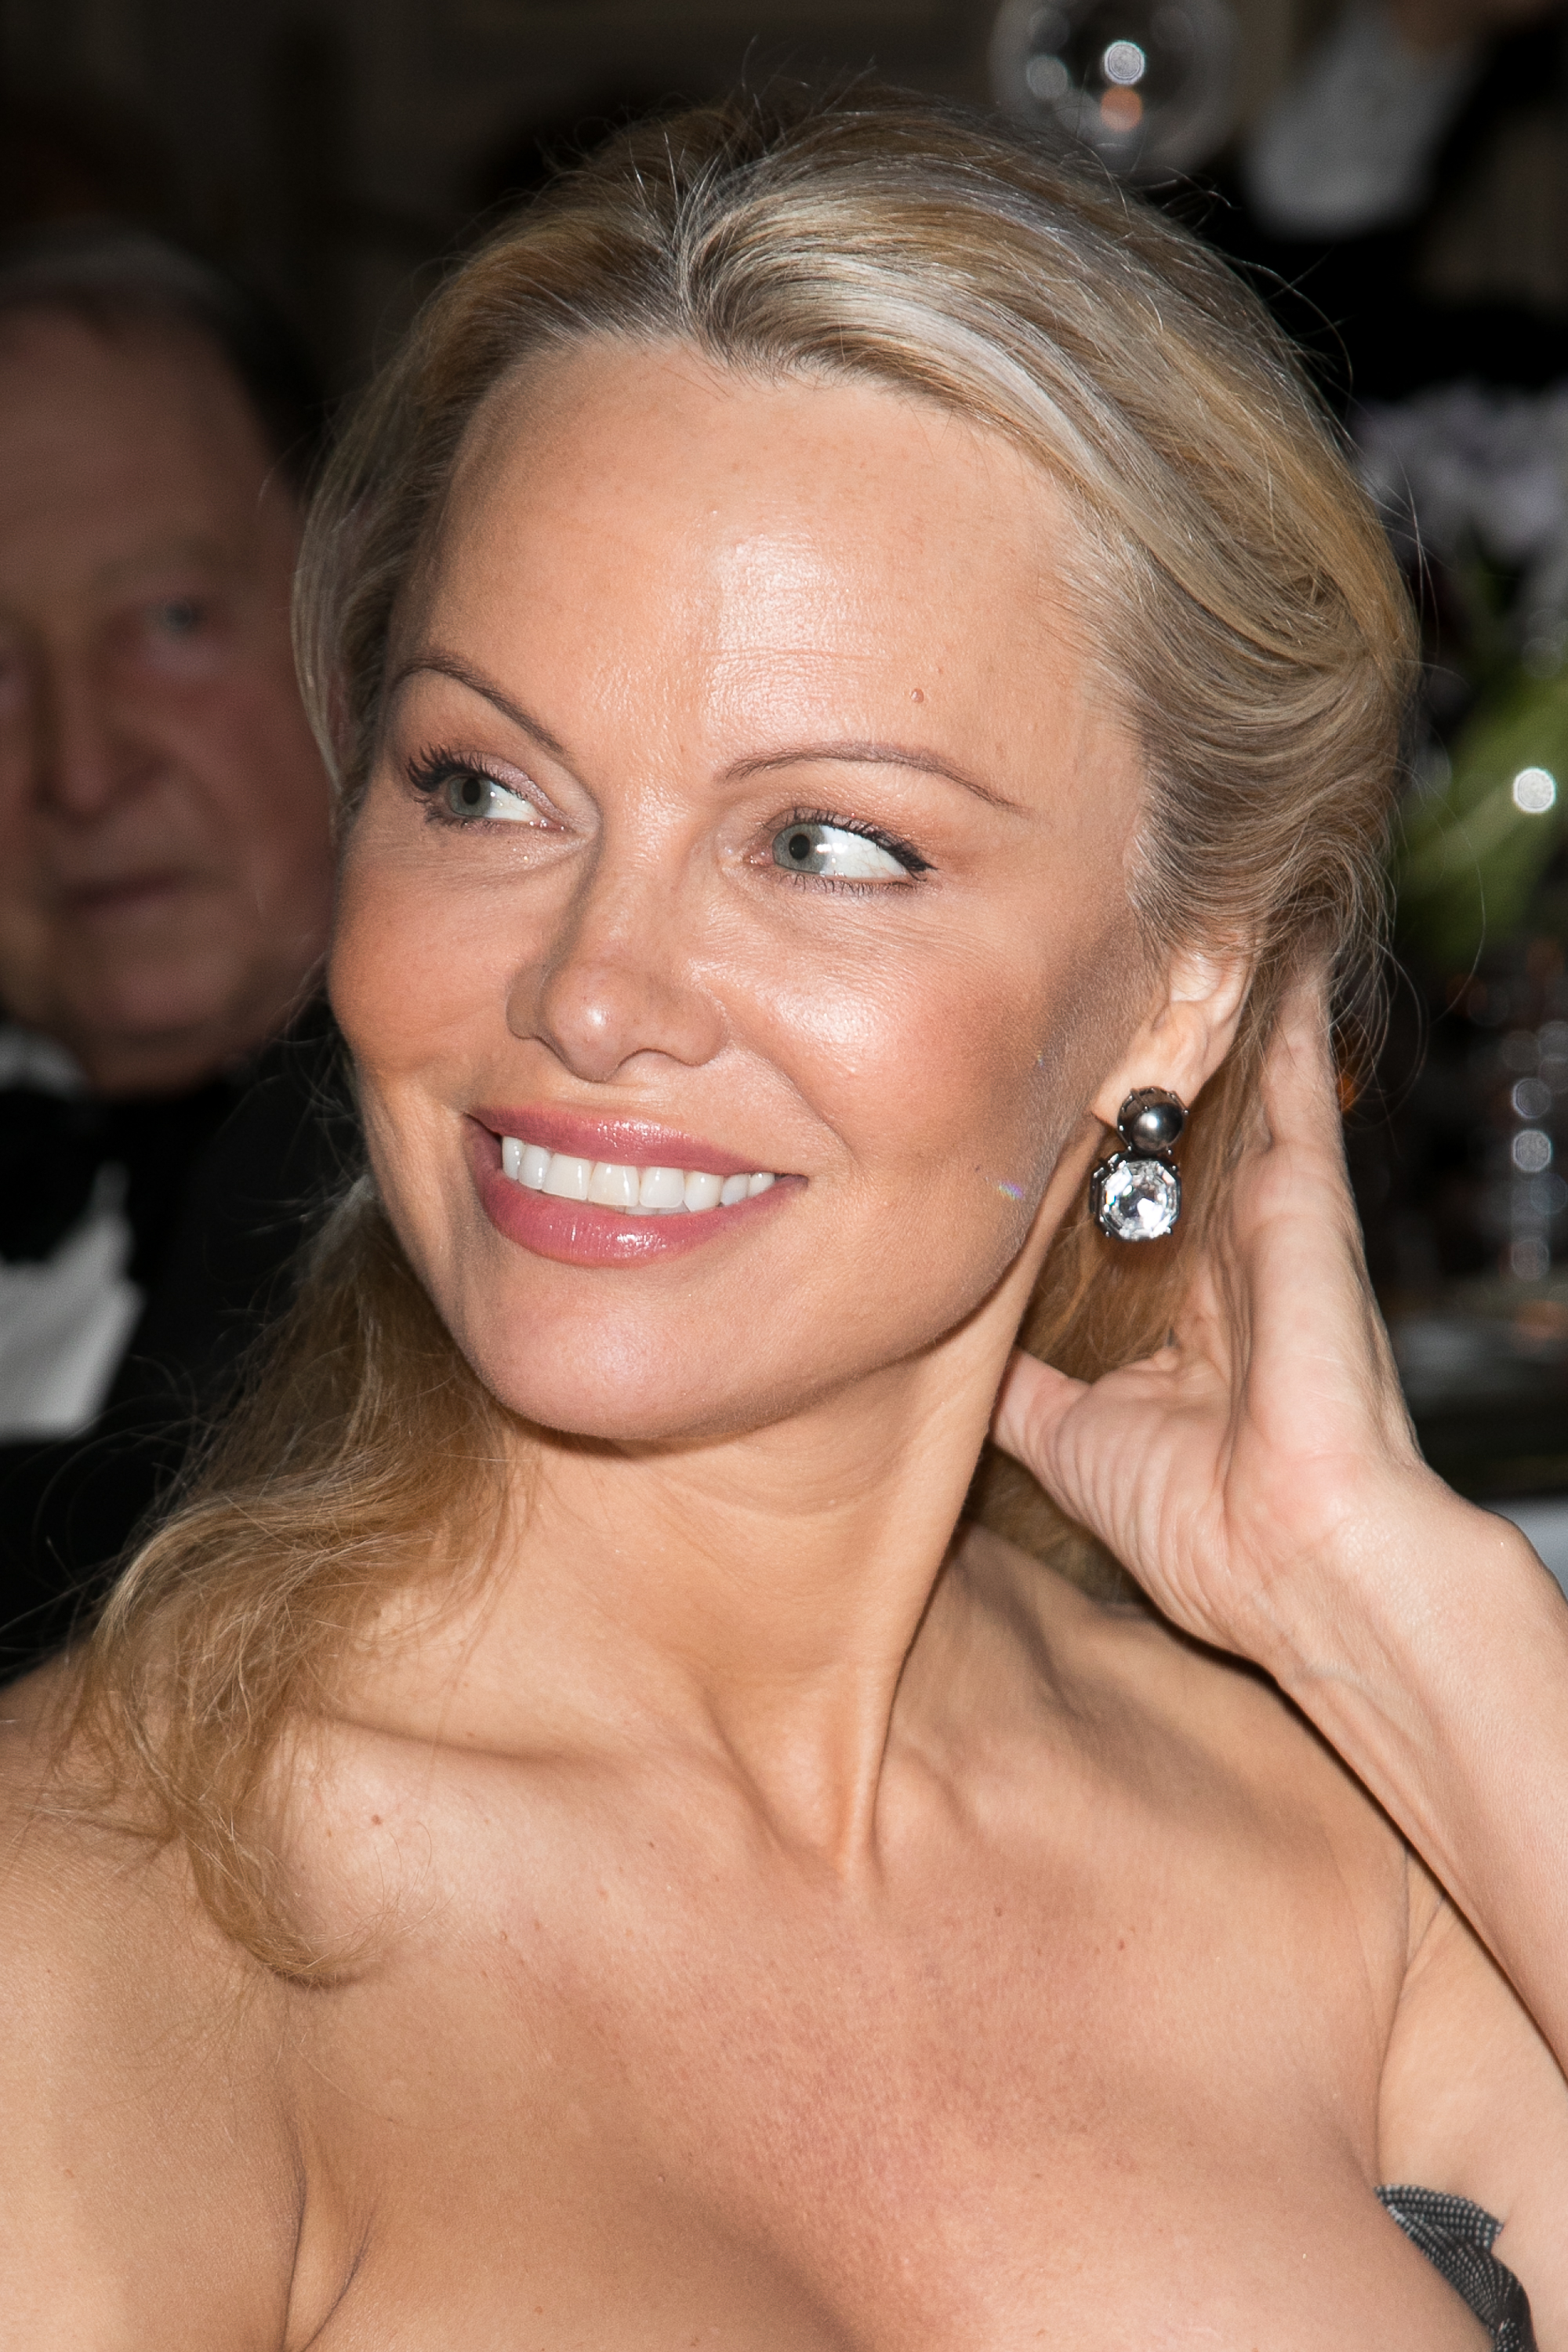 Pam-Anderson-George-V